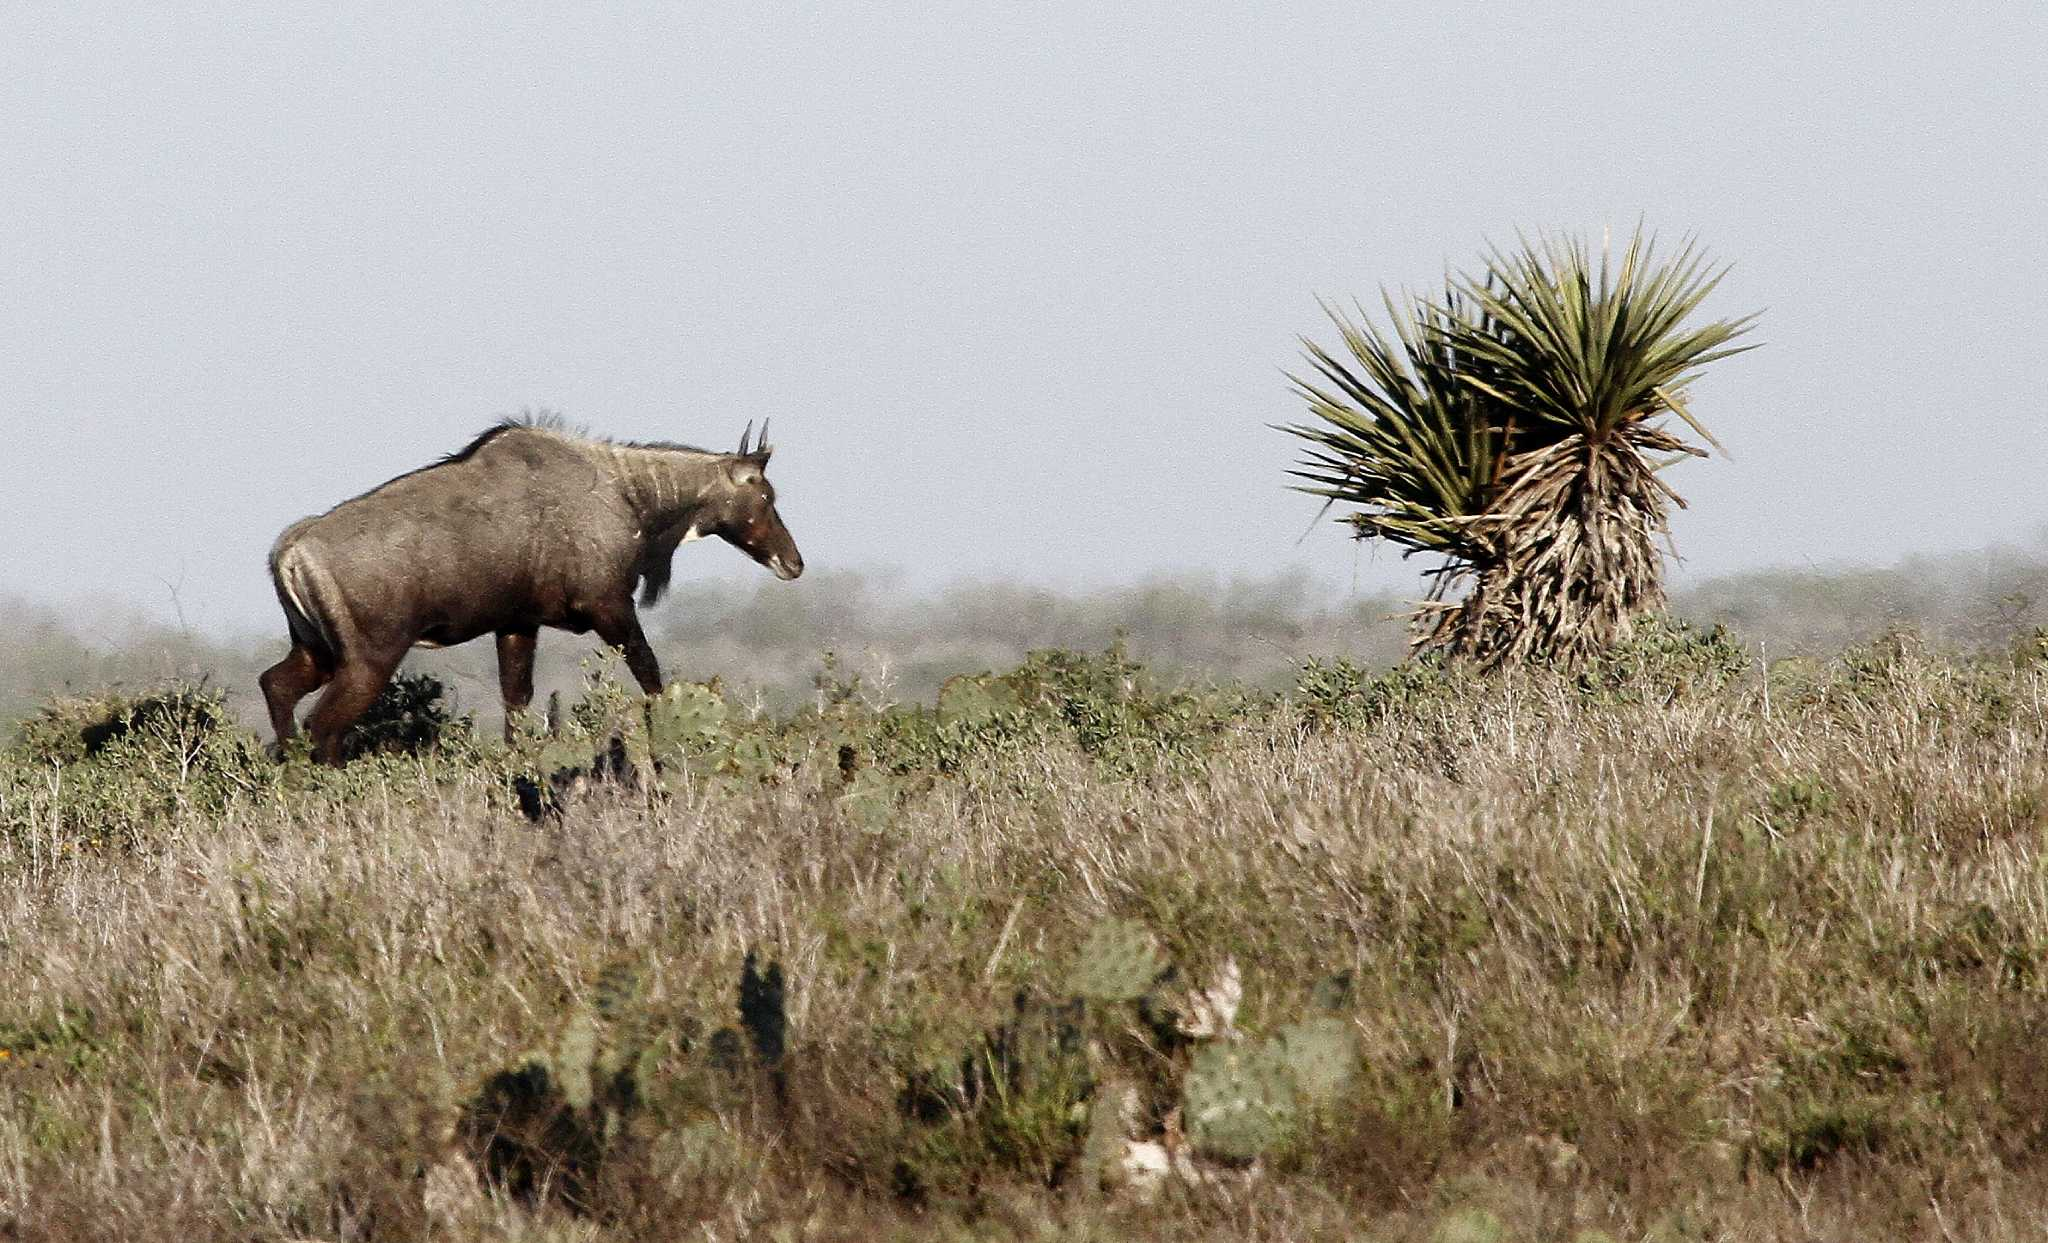 Texas parks and wildlife department expands its options to